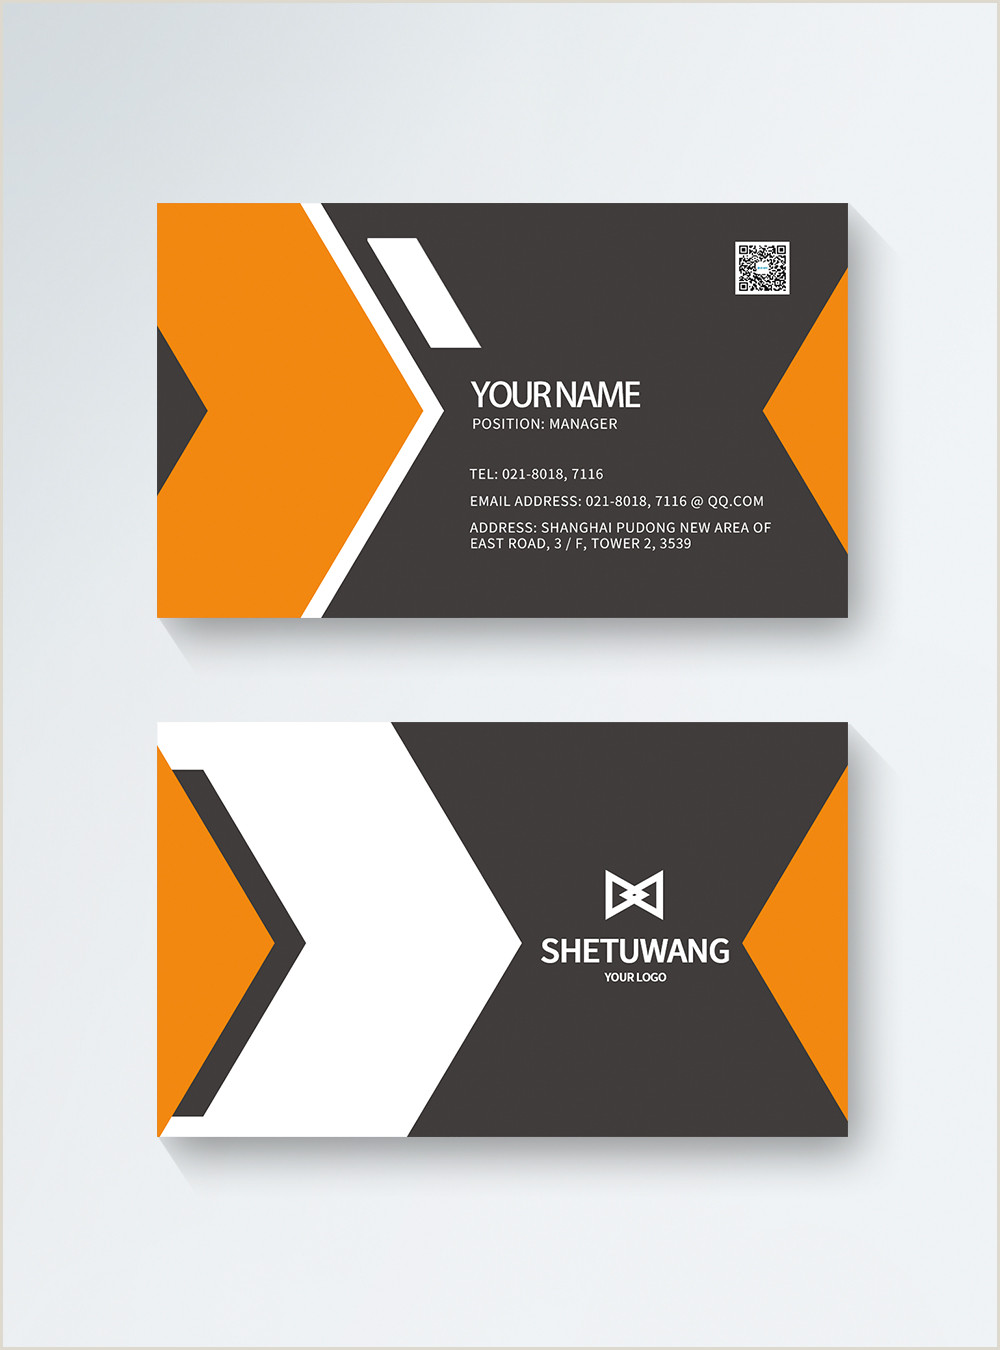 Business Card Simple Design Simple Designer Business Card Template Image Picture Free